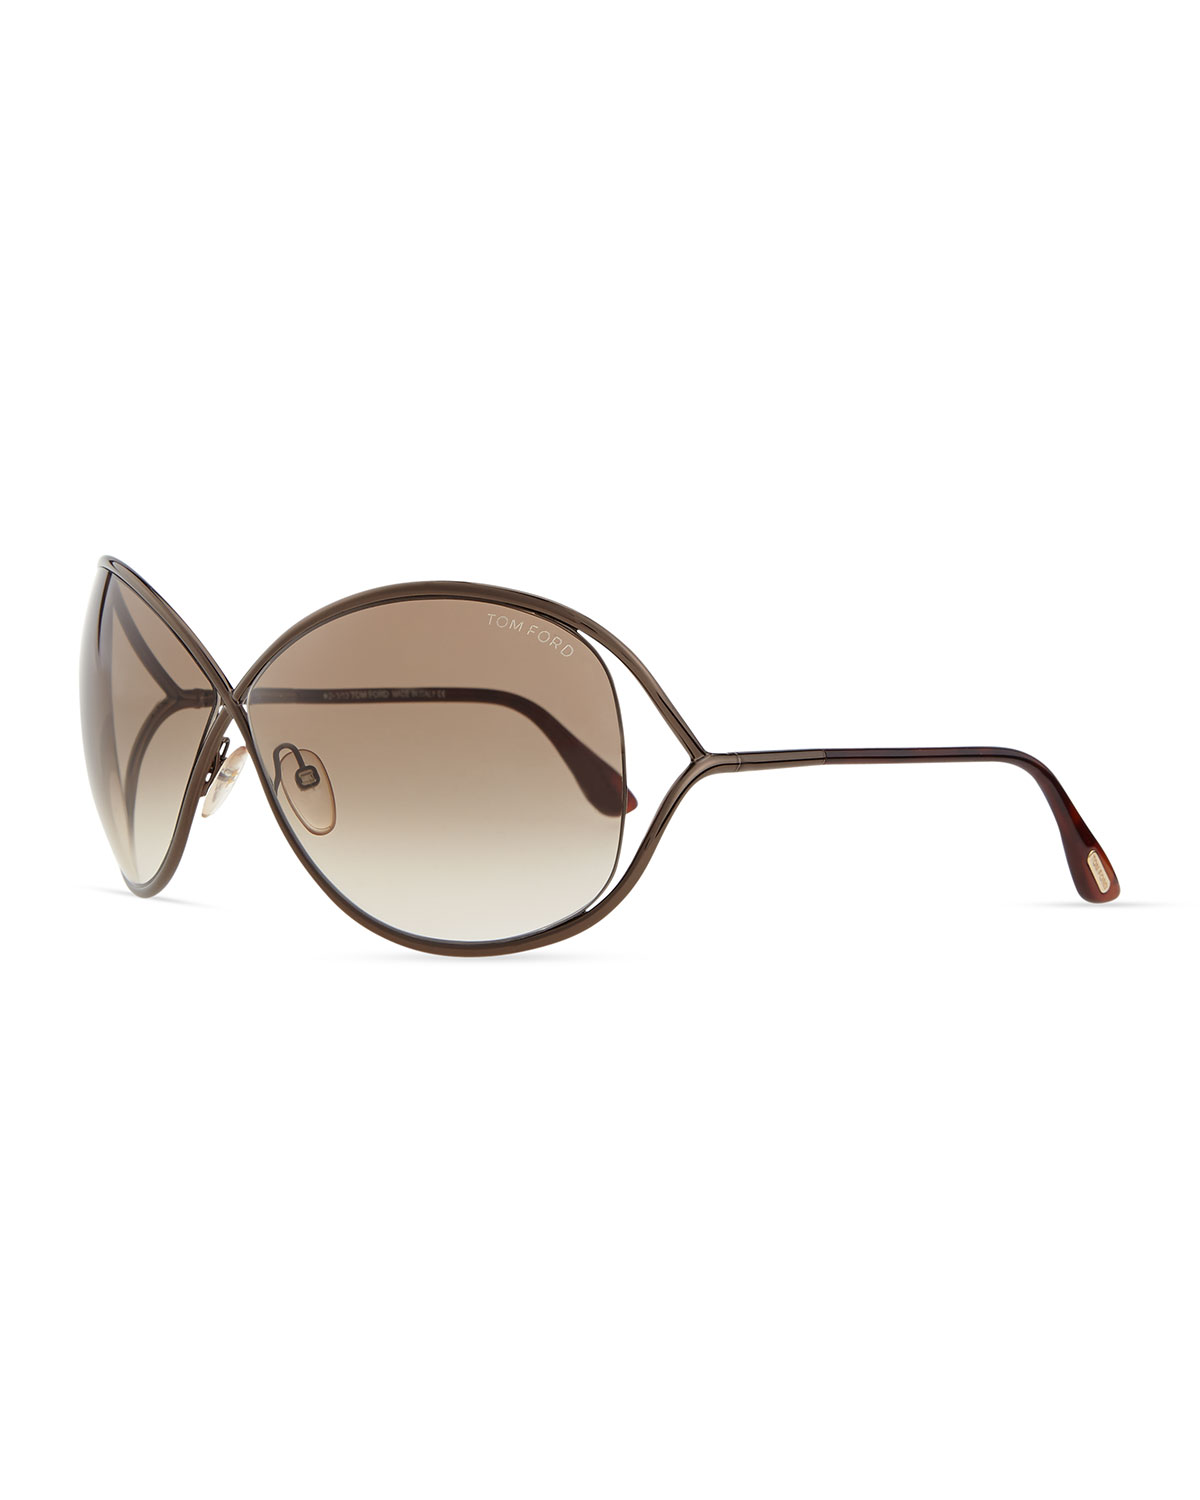 Tom Ford Sunglasses Miranda Sunglasses